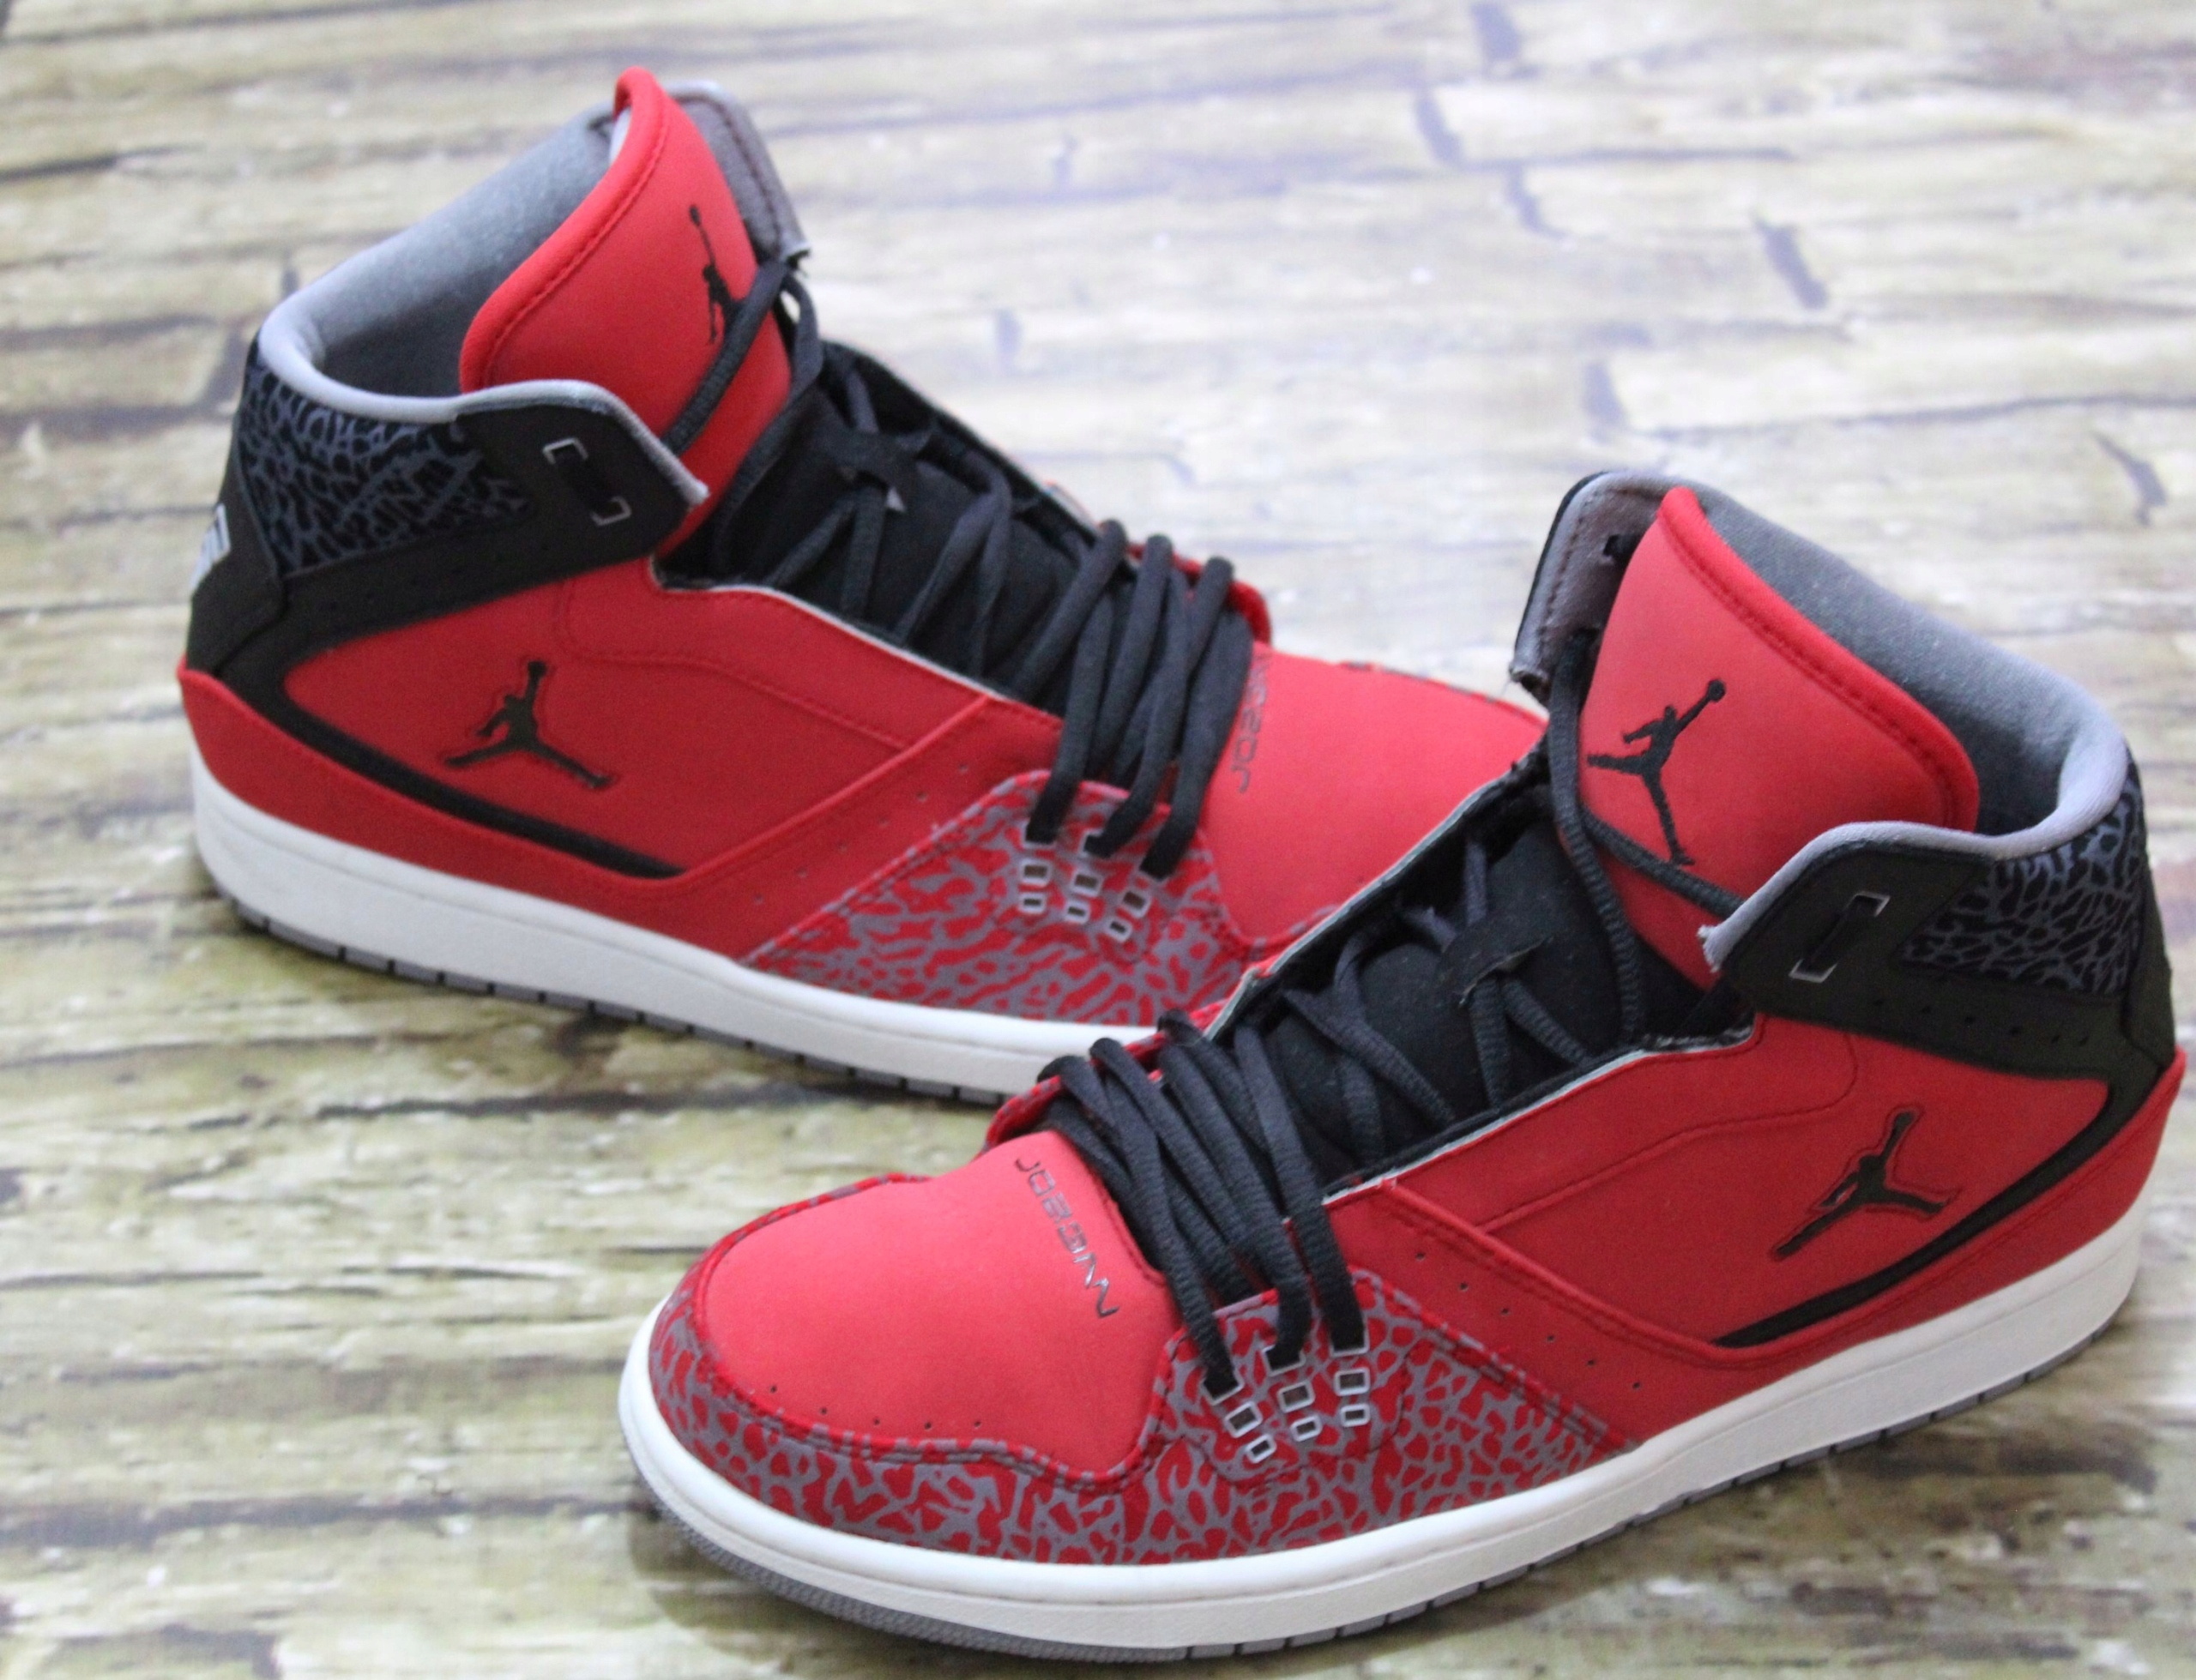 on sale dca3a 93130 NIKE AIR JORDAN 1 FLIGHT FIRE RED BLACK CEMENT 44